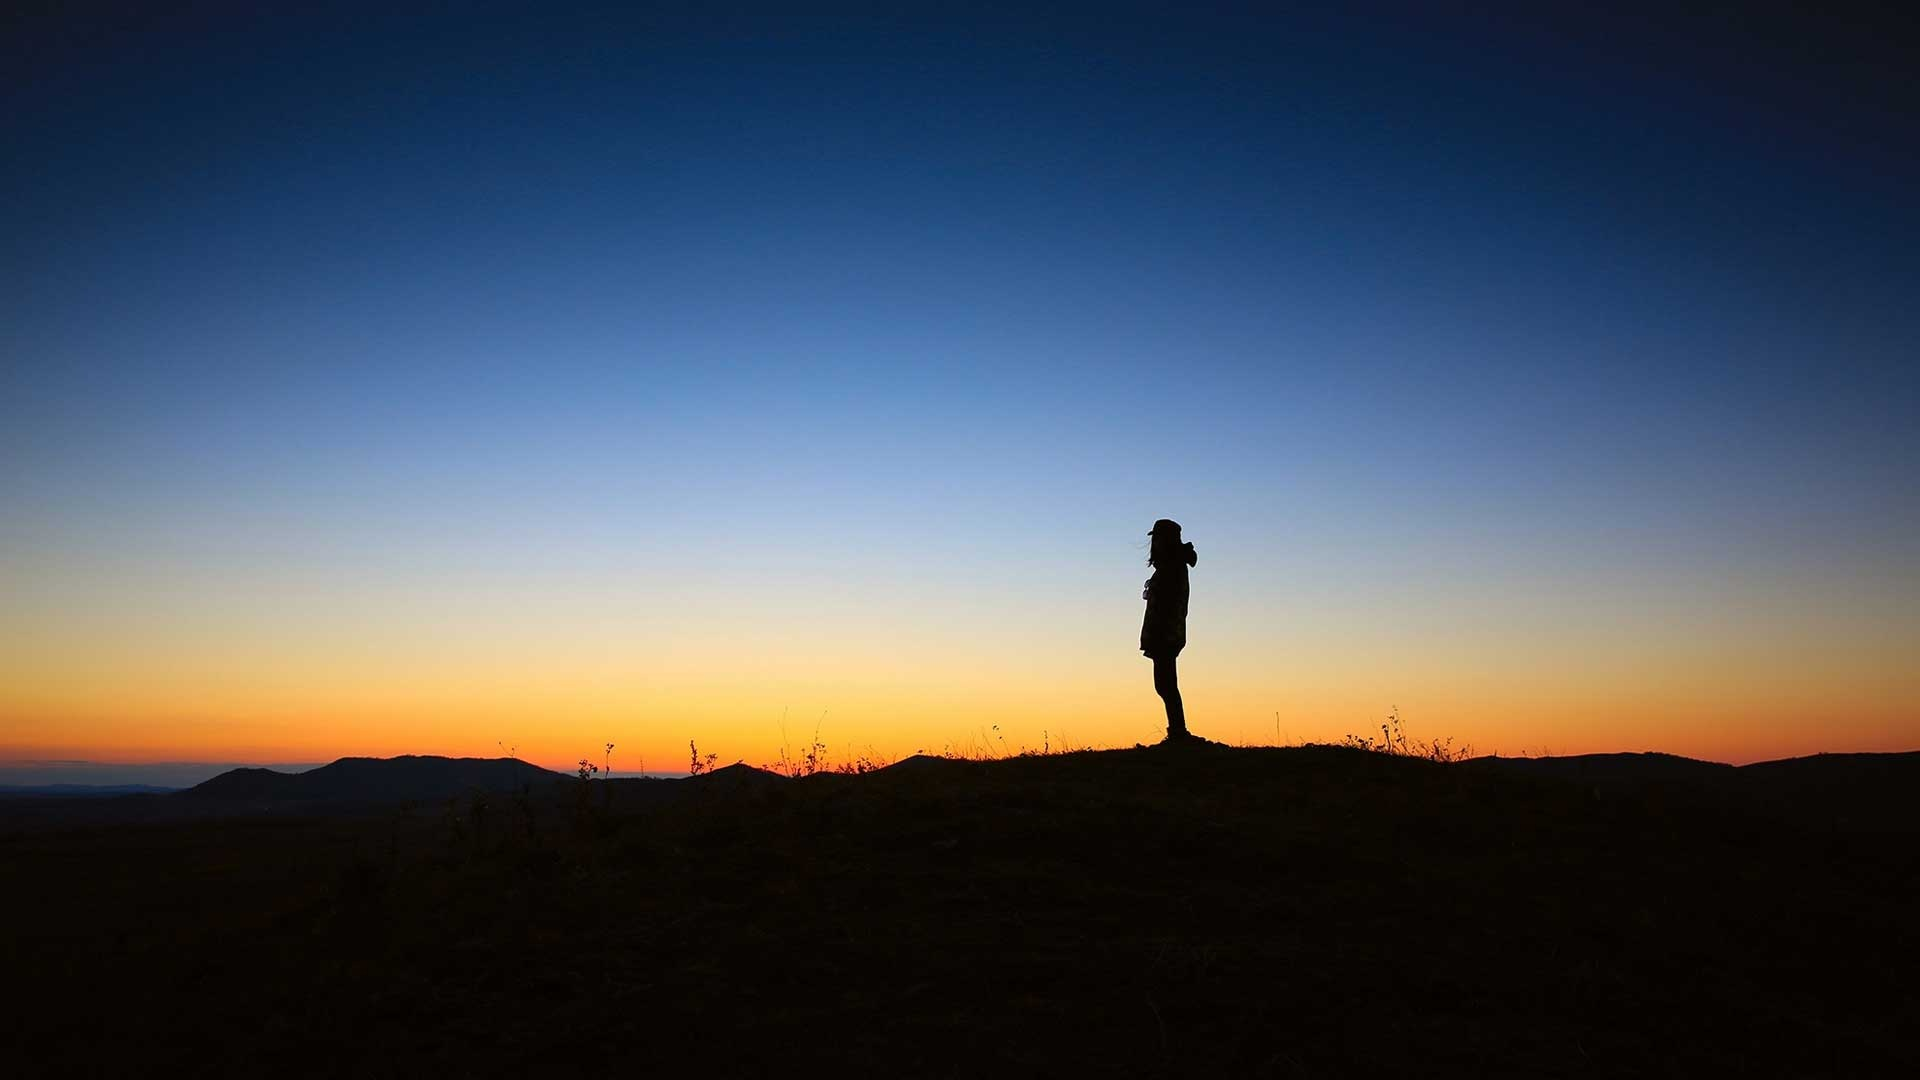 Silhouette on a mountain at sunset